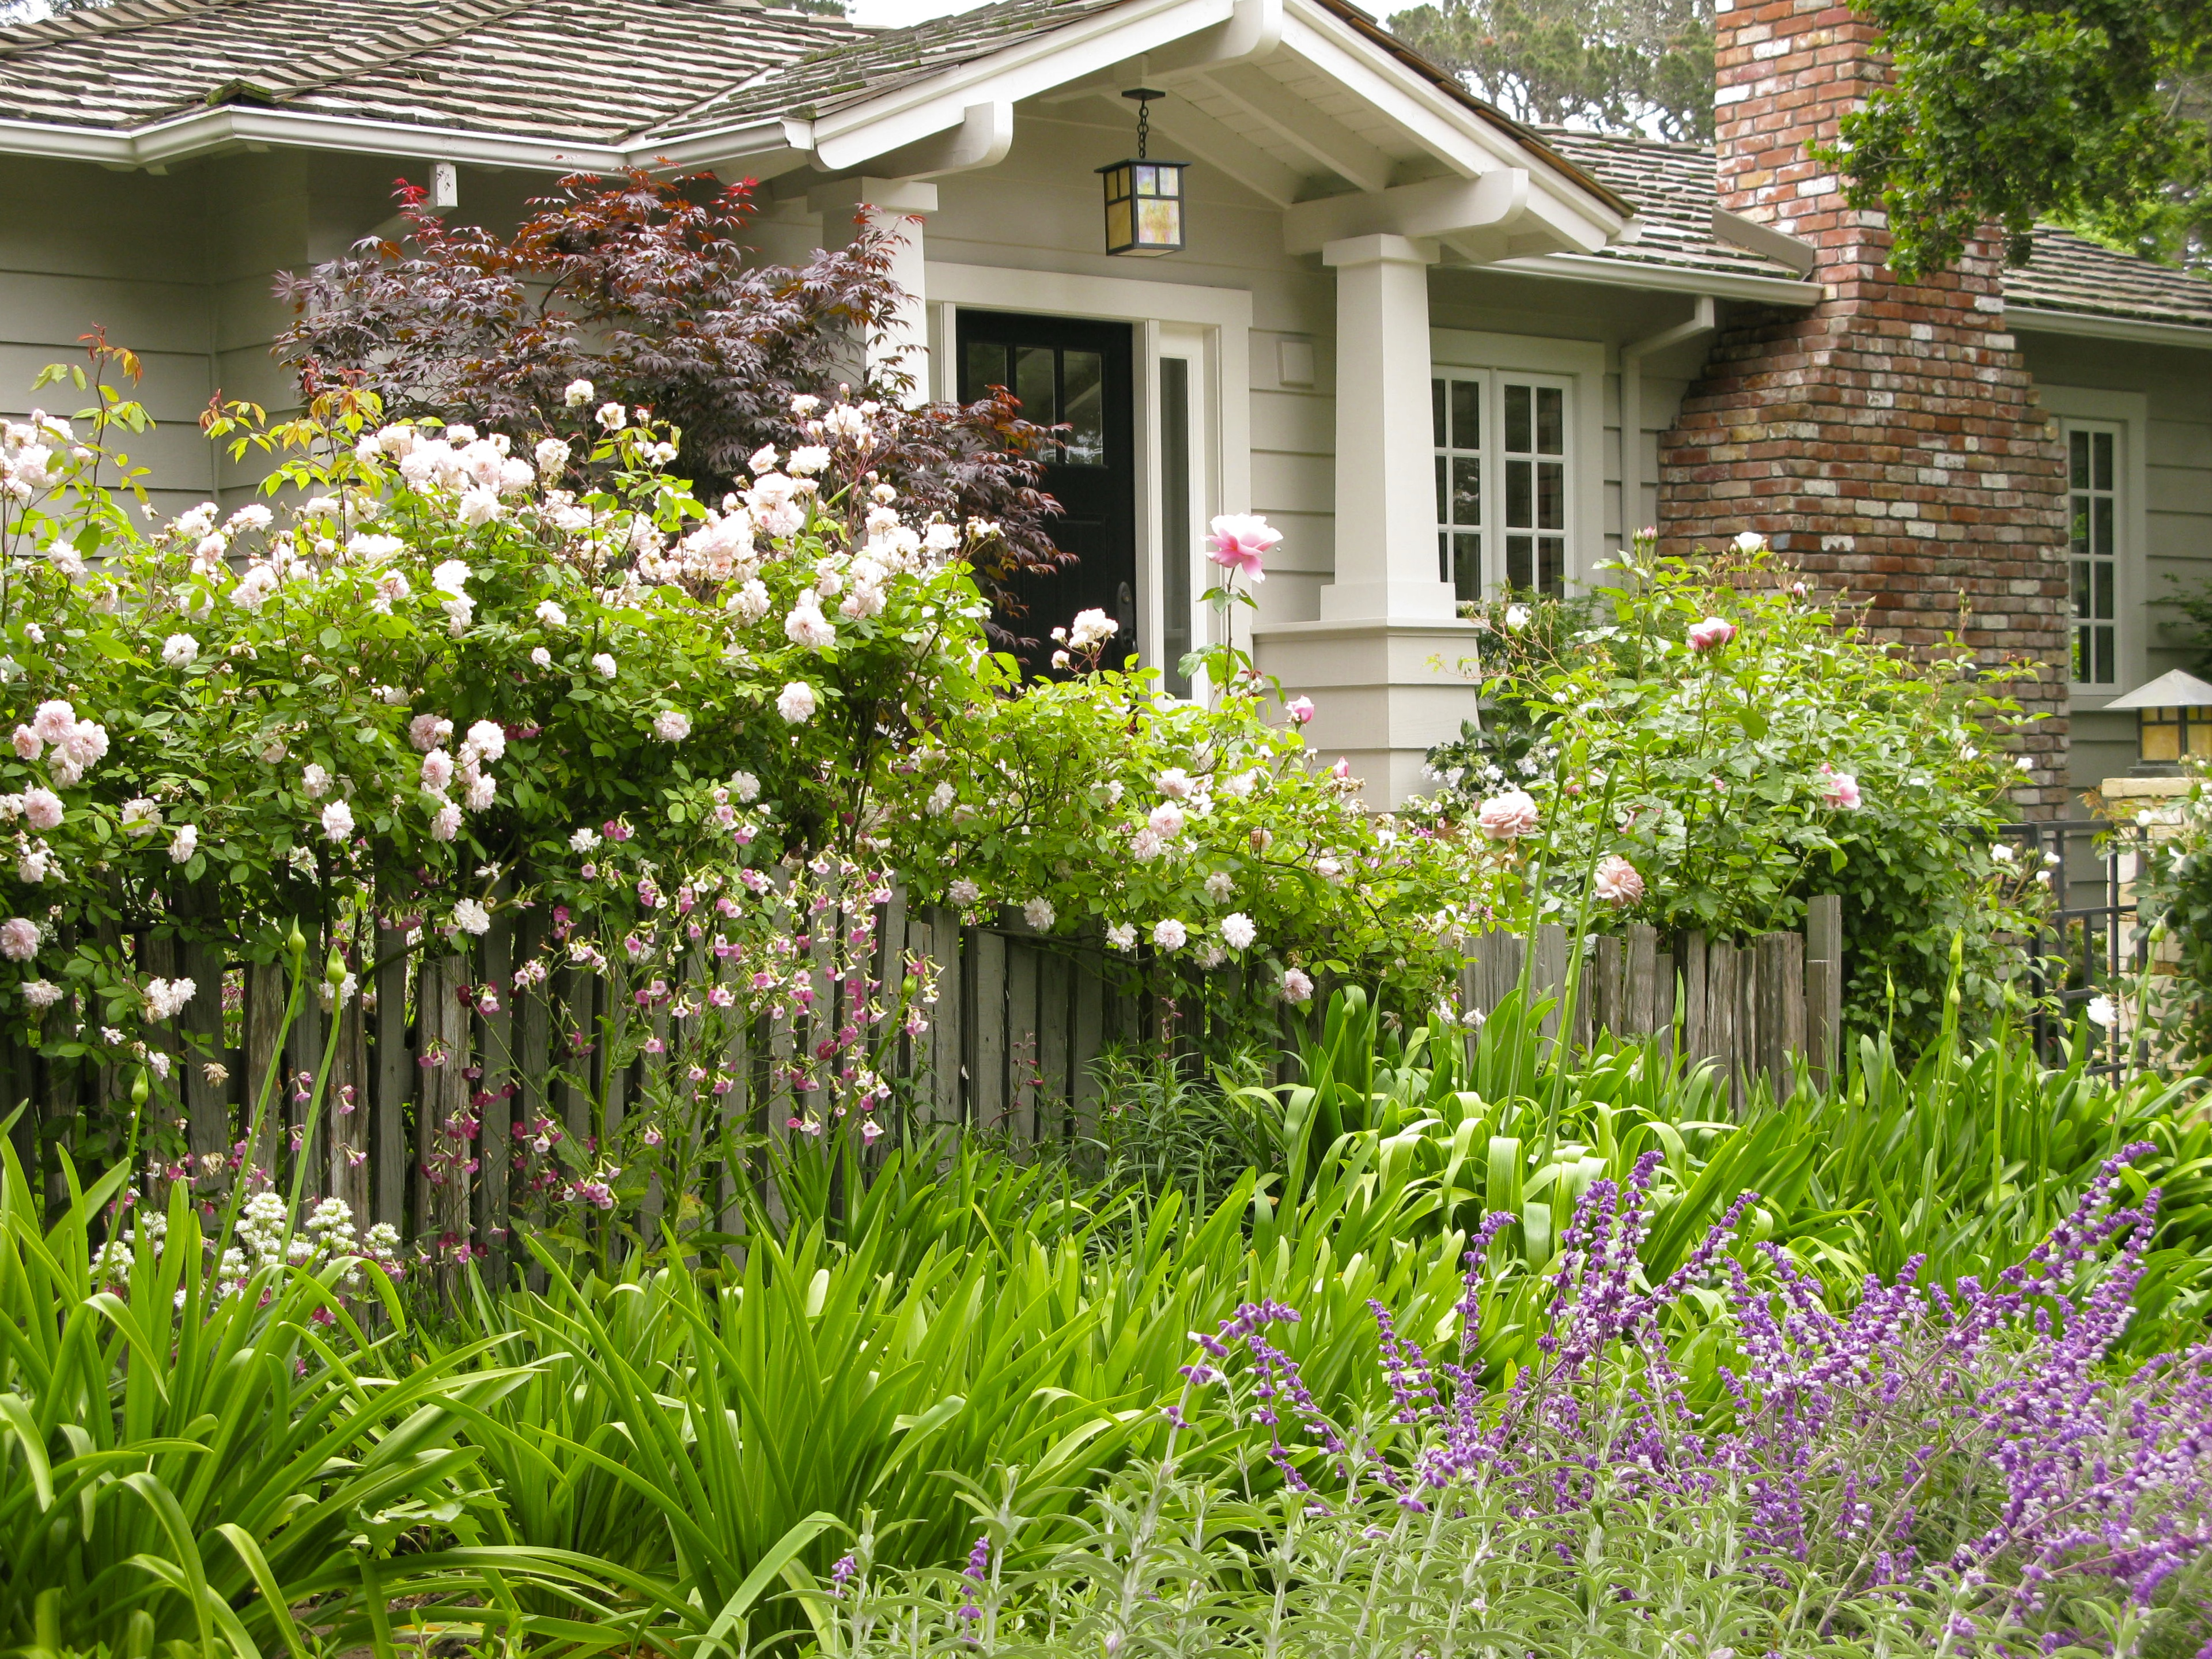 Carmel S Cottage Gardens Once Upon A Time Tales From